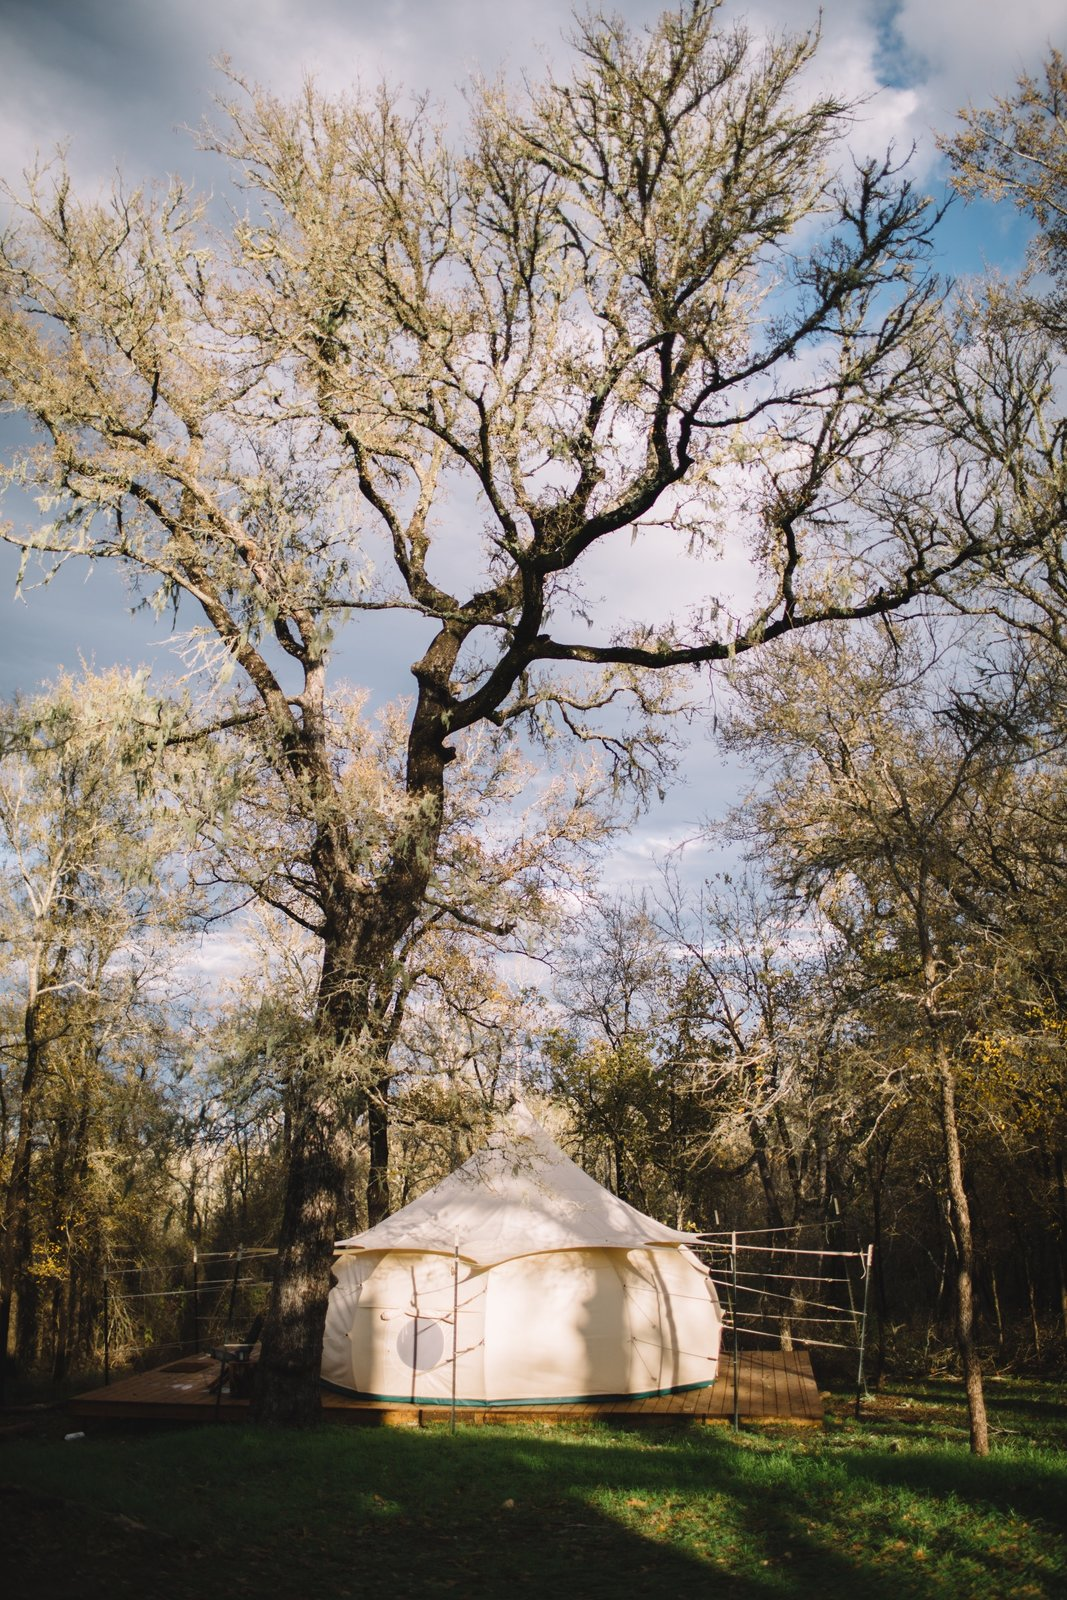 Available to rent through Airbnb, Green Acres' yurts are hidden away in a quiet wooded area just outside of Austin, Texas.The campsite takes glamping to a whole new level with roaming animals and numerous activities.